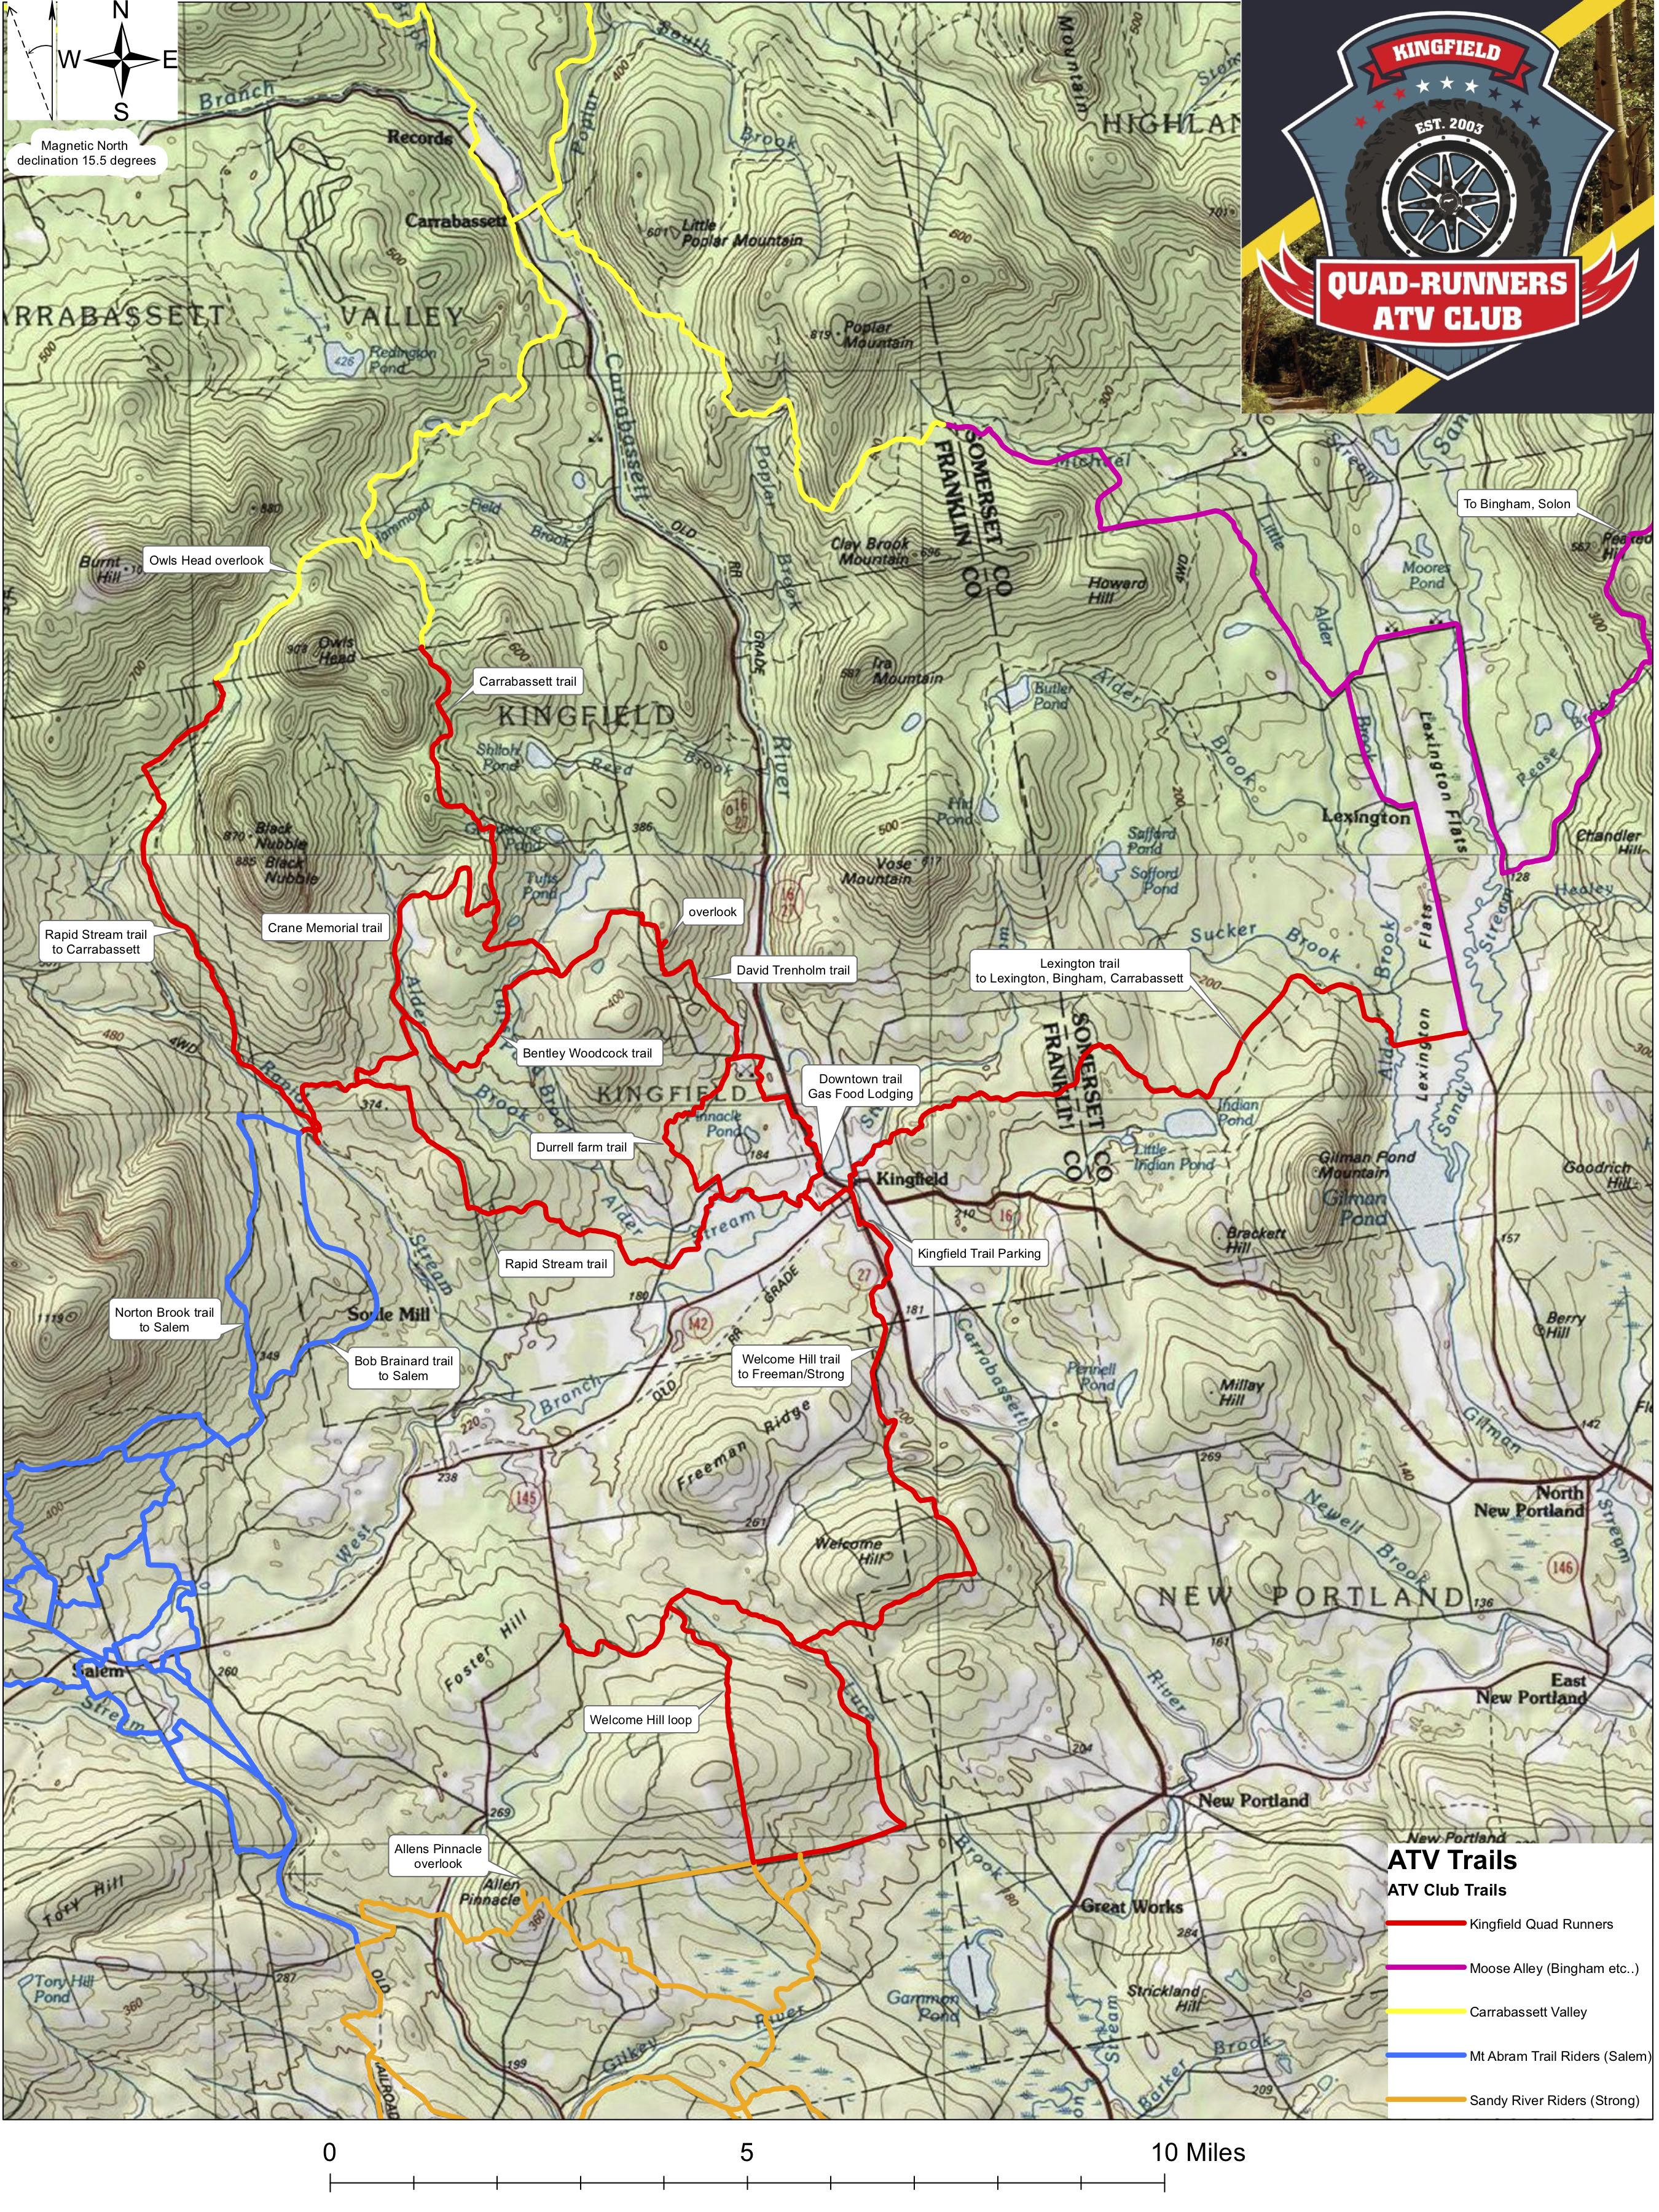 DRAFT Trail Map Summer 2019 Kingfield Quad Runner ATV Trail Map Summer 2019